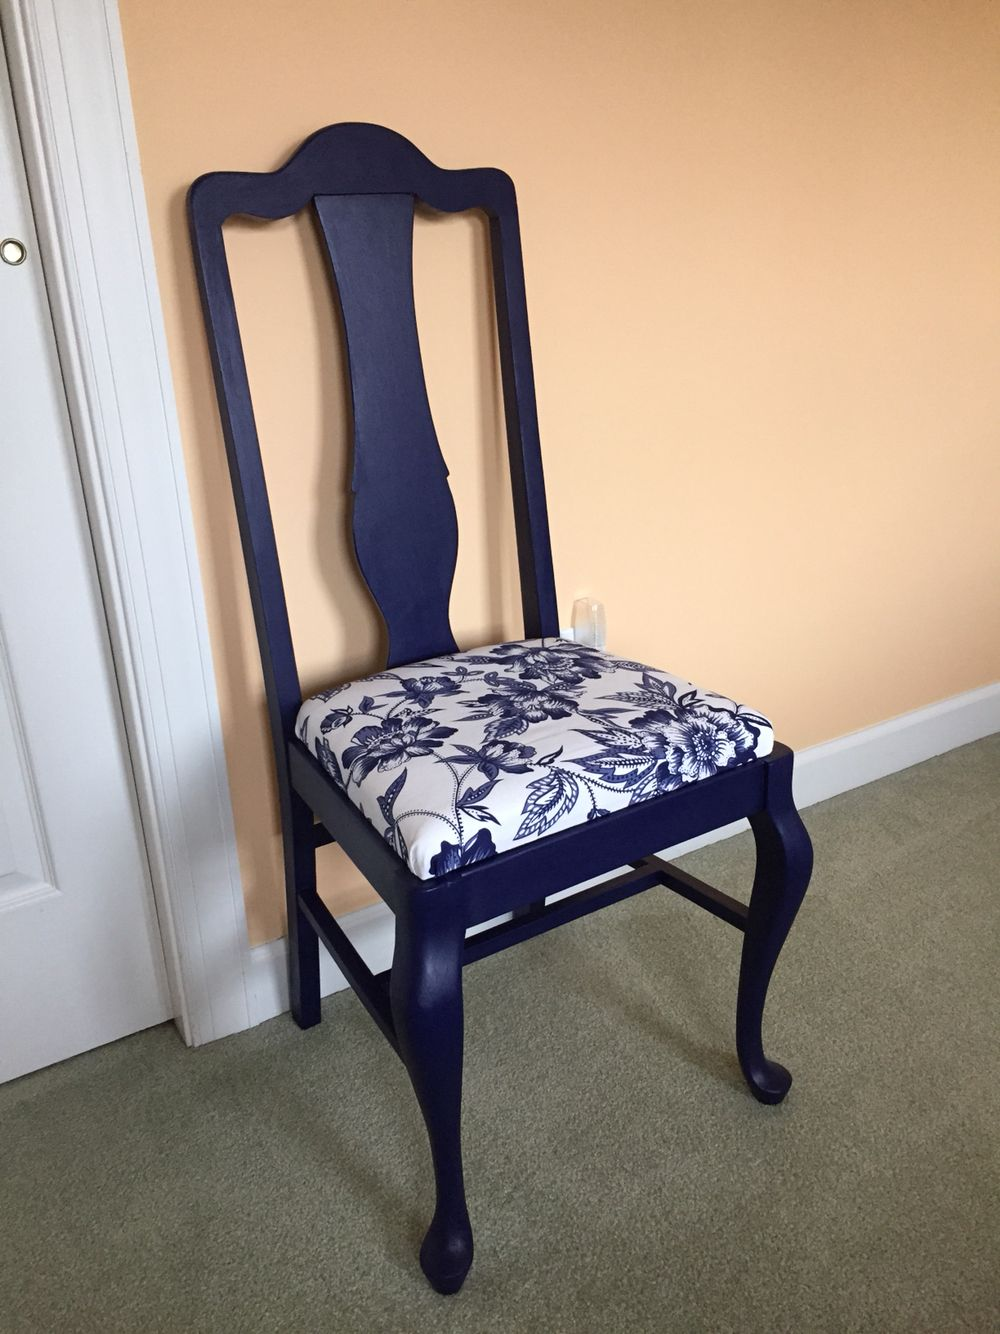 Queen Anne chair painted \u0027Canton Blue China\u0027 and covered with a ...